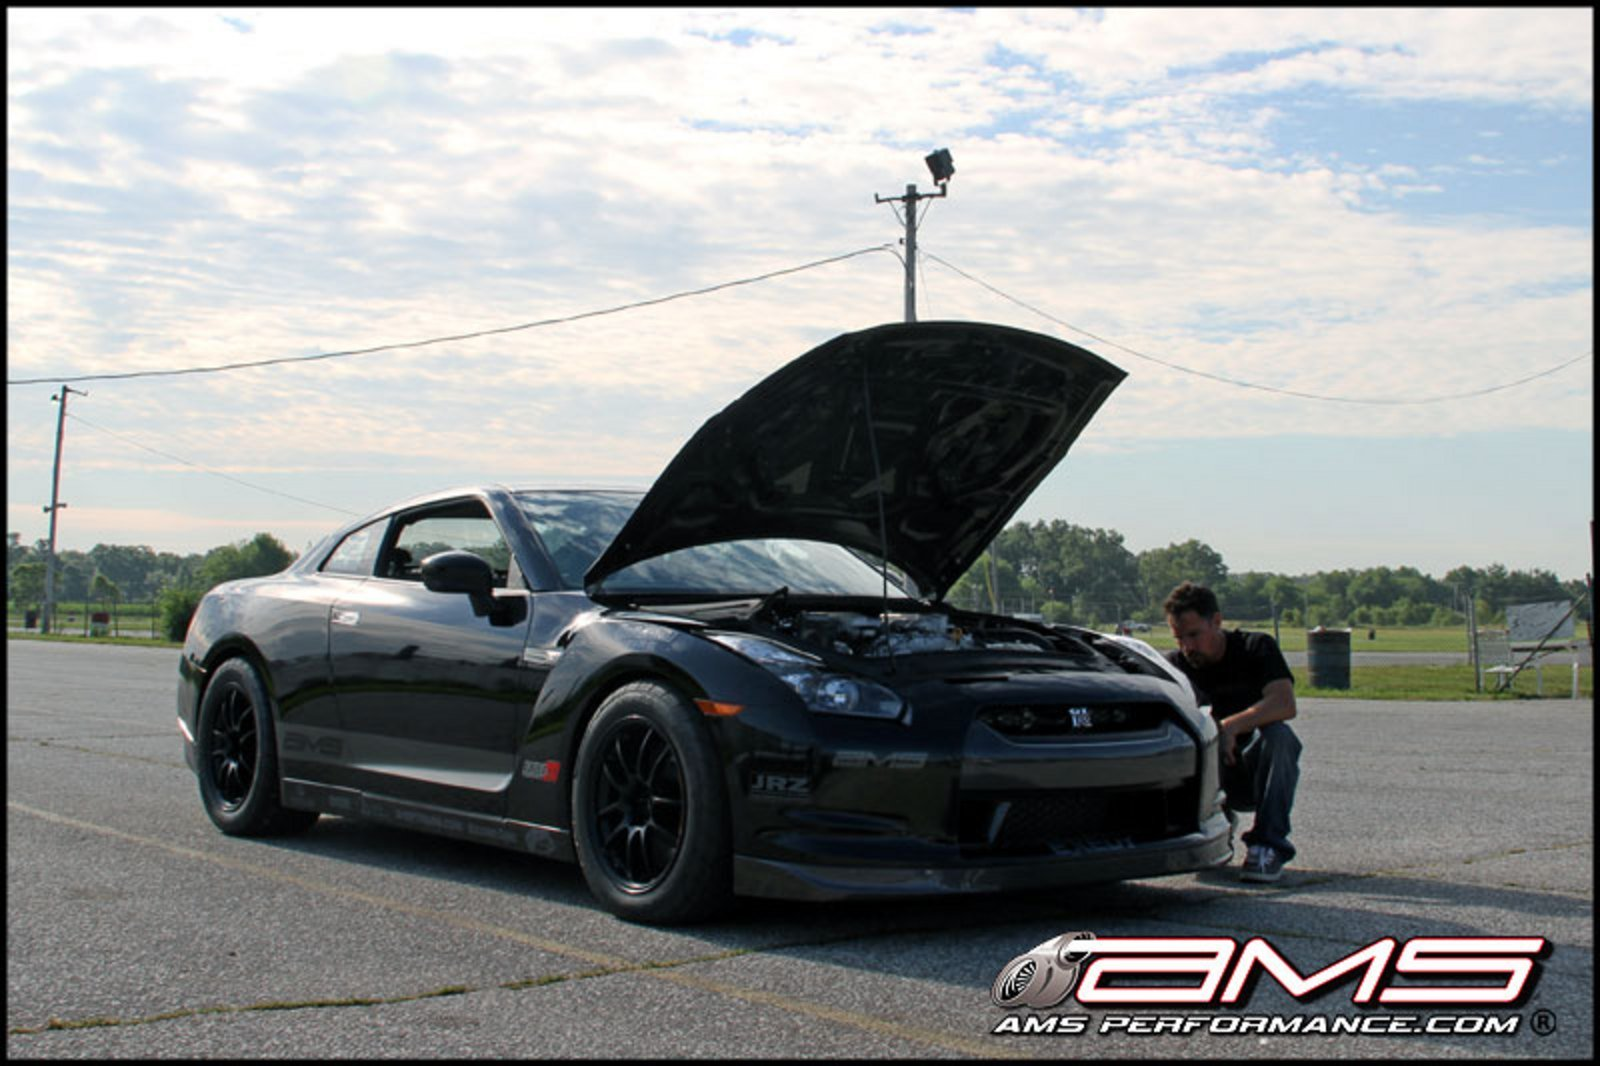 2011 nissan gt r alpha 12 by ams performance review top speed. Black Bedroom Furniture Sets. Home Design Ideas